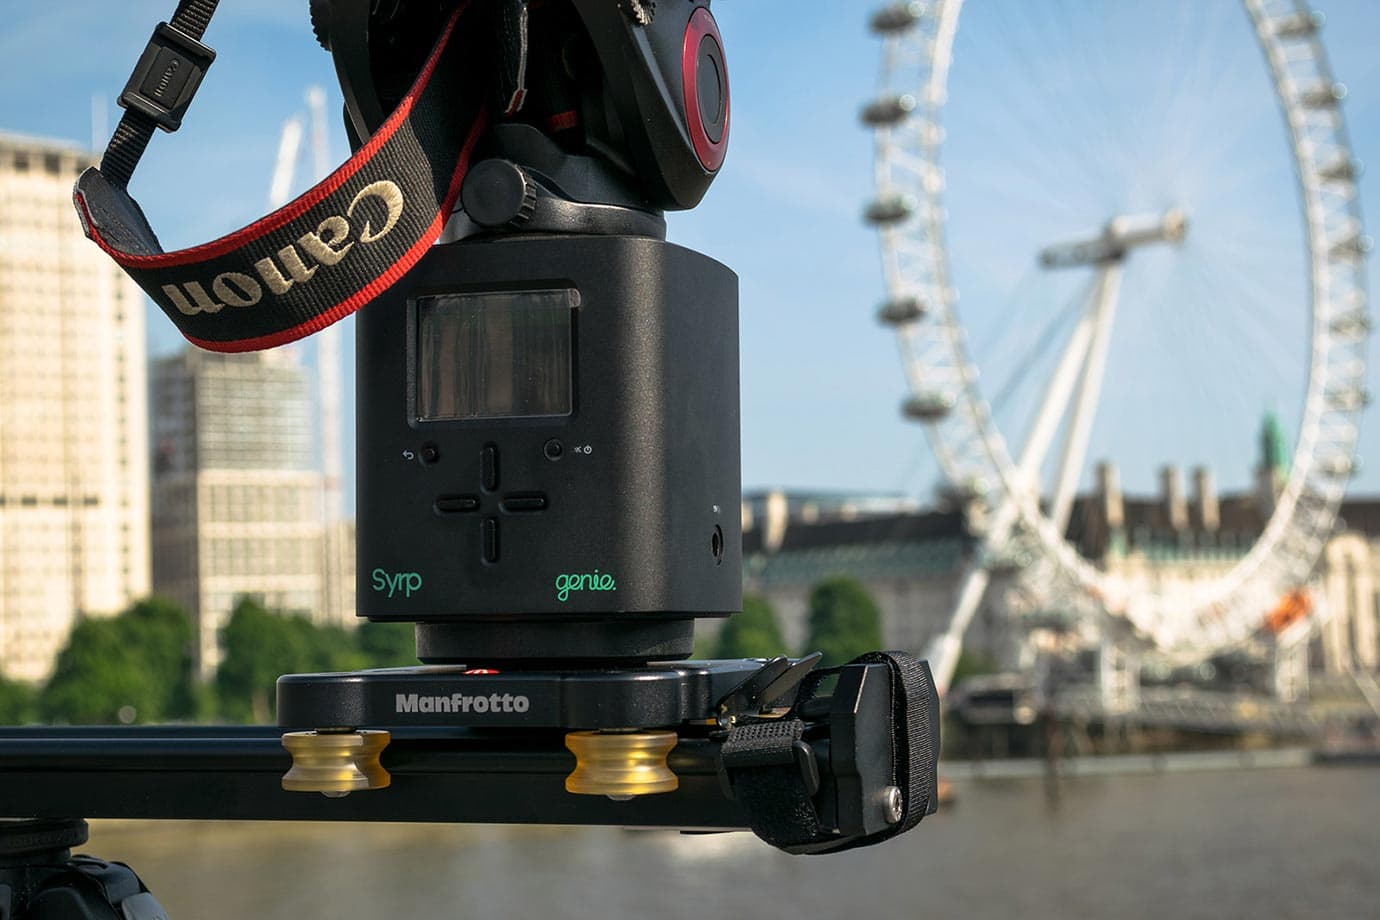 Motion control time-lapse device